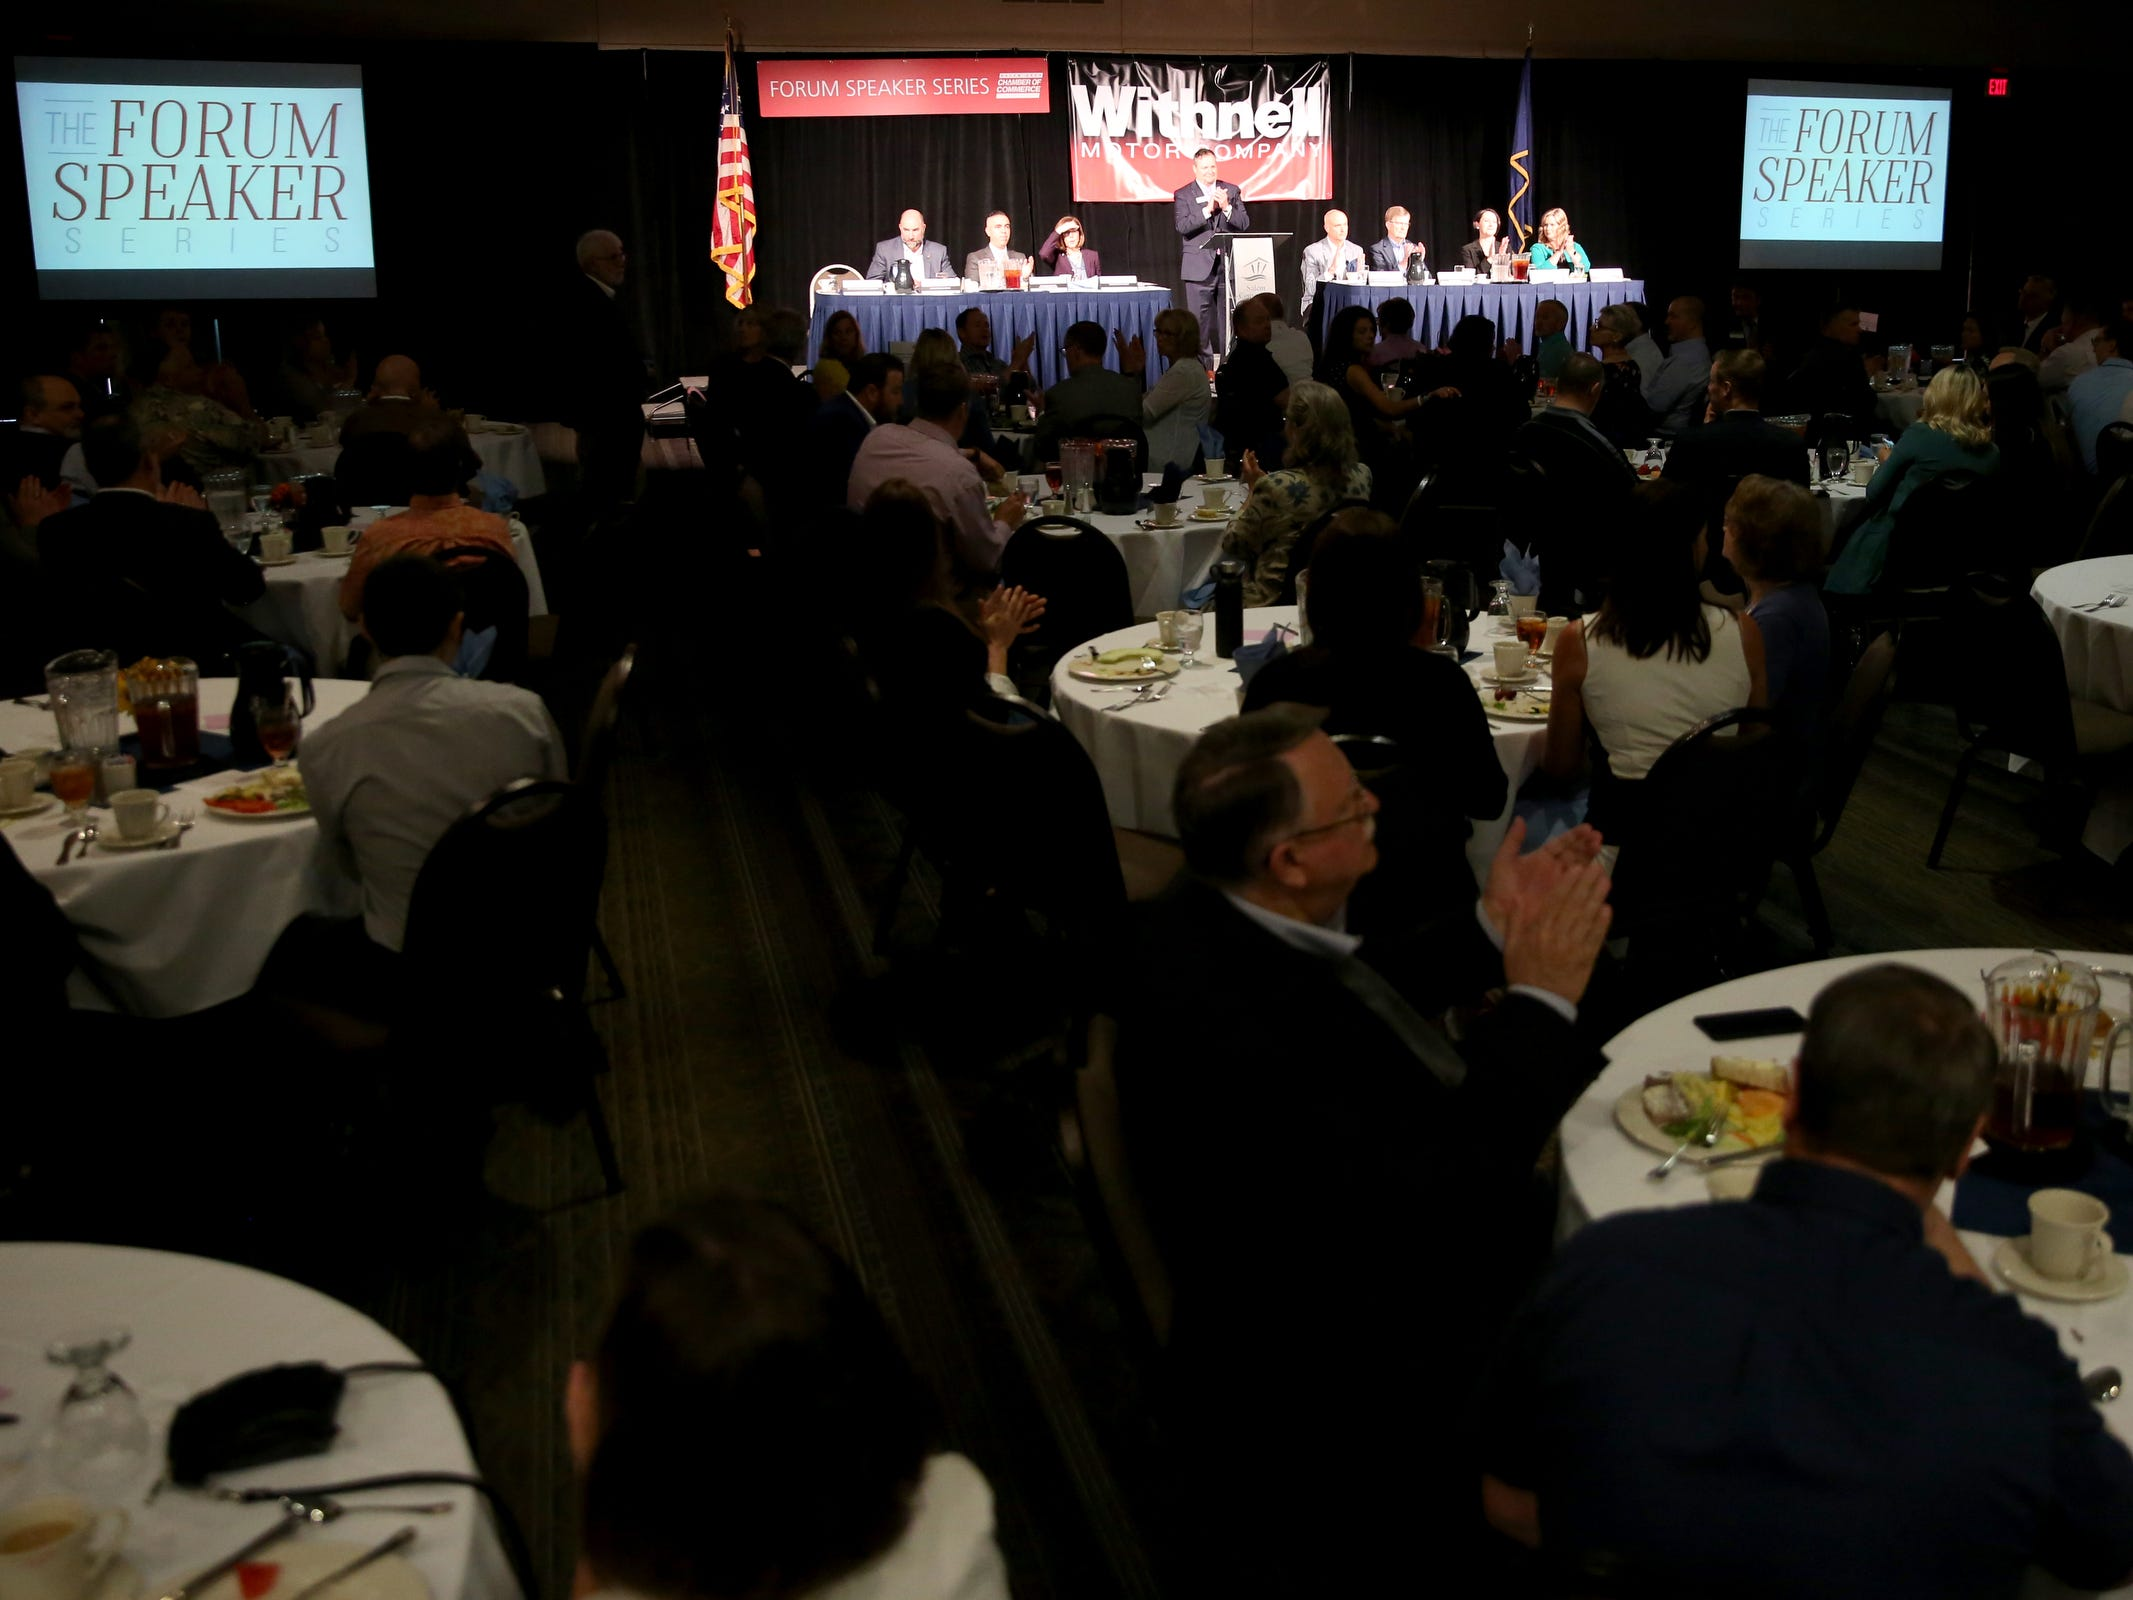 The Salem Area Chamber of Commerce monthly Forum Speaker Series at the Salem Convention Center on May 13, 2019.